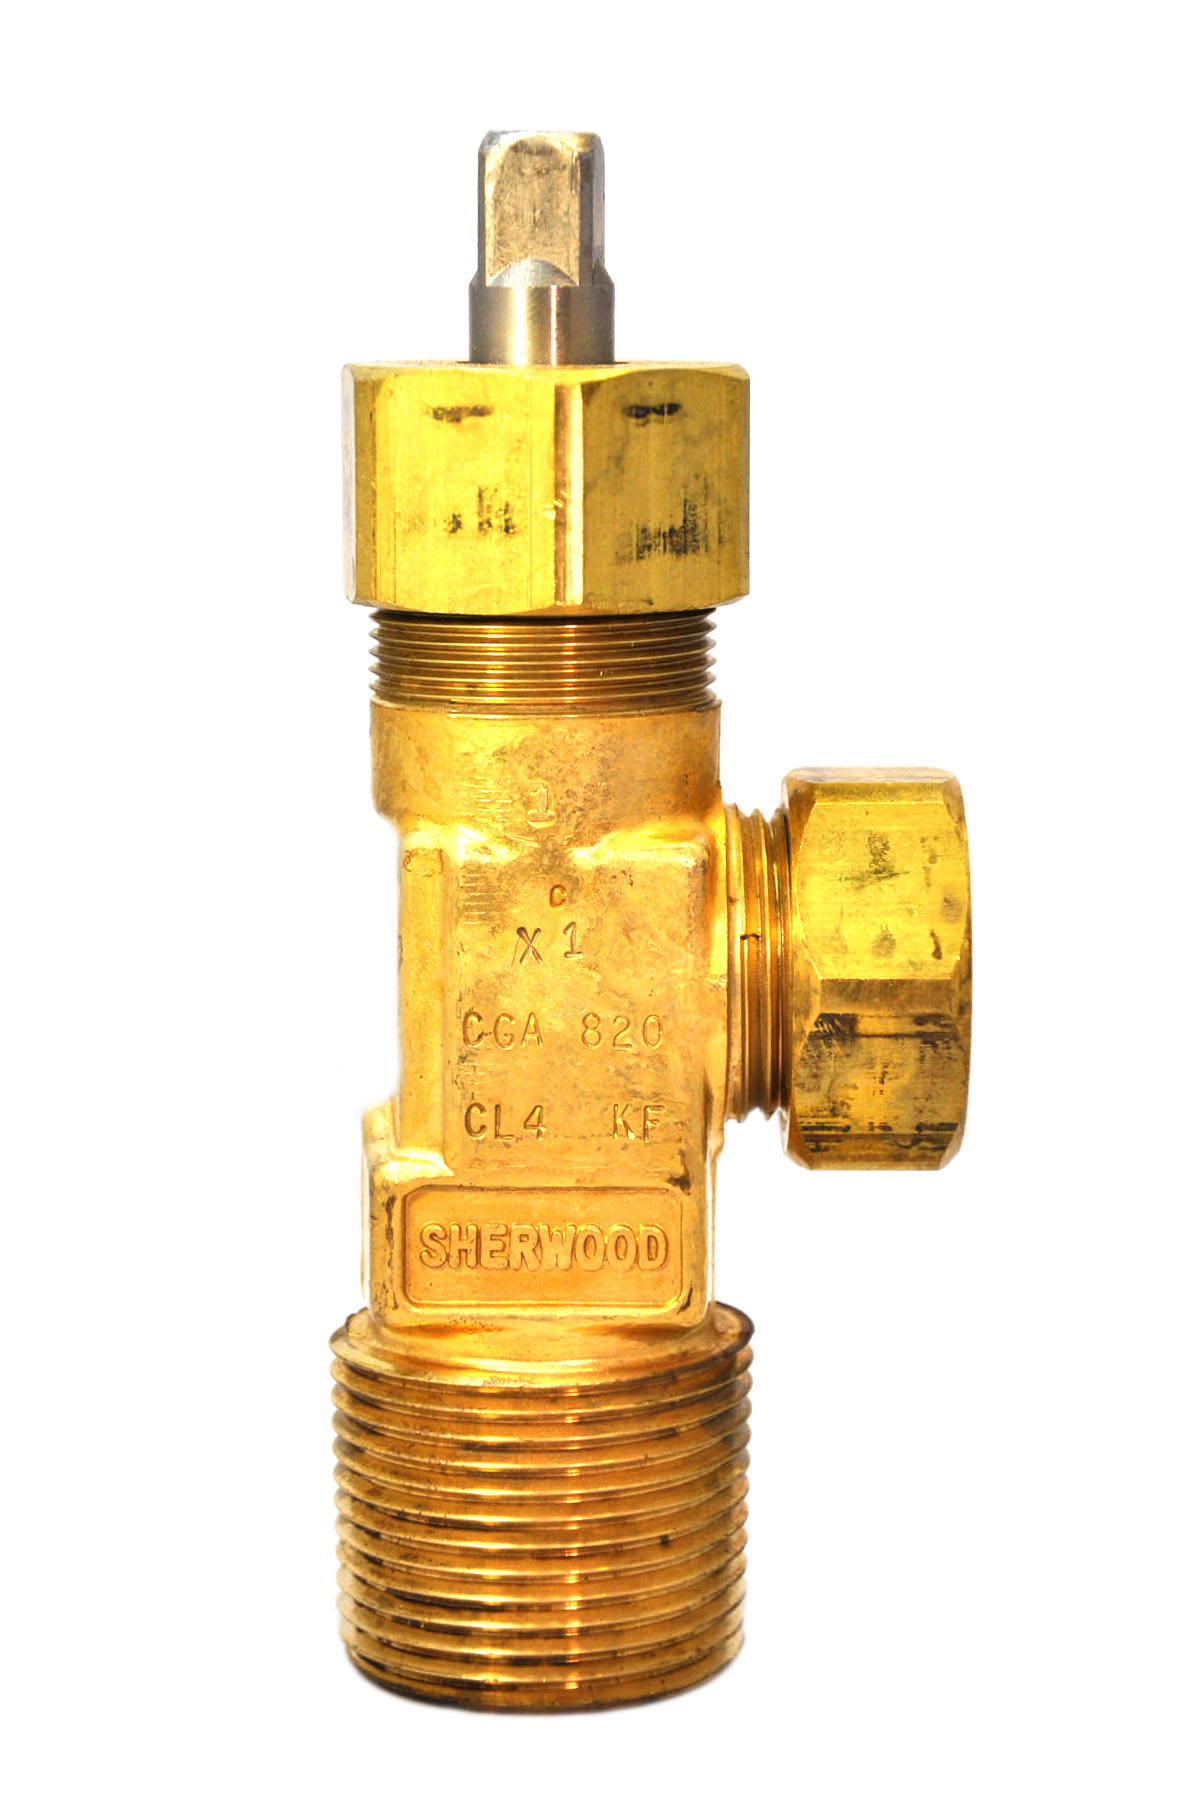 Chlorine Gas Valves - Ton Container Valves